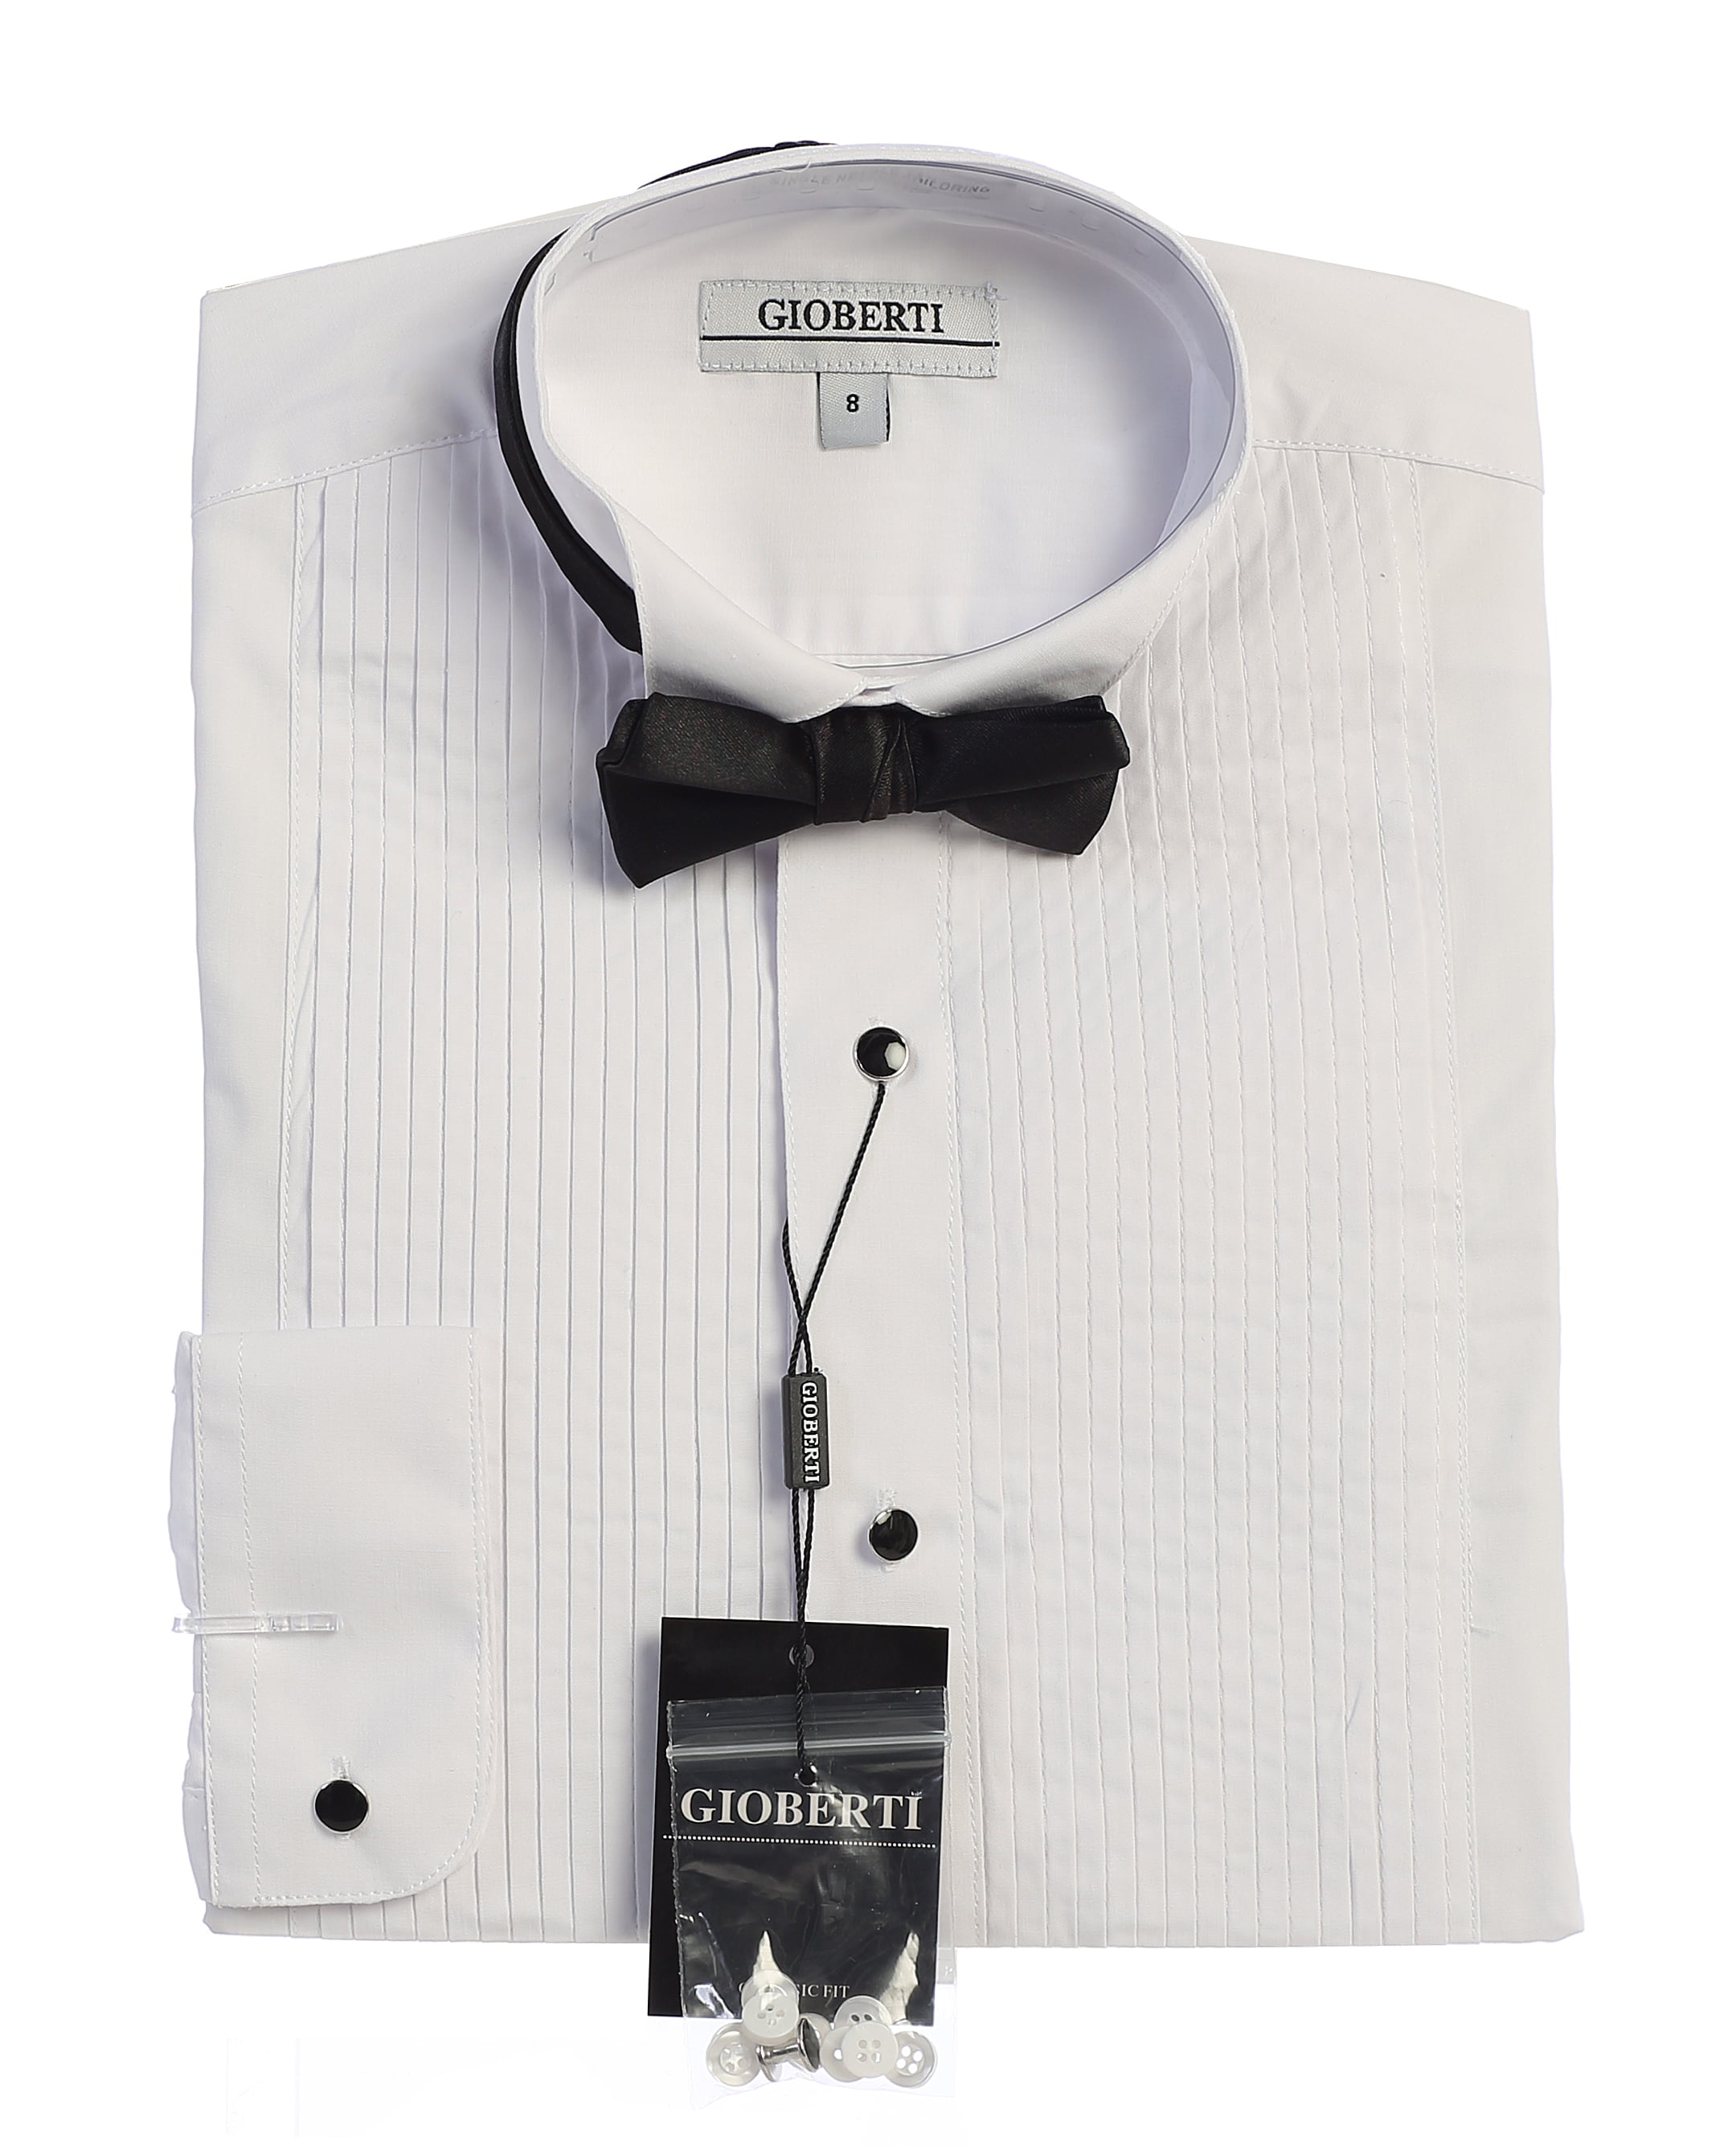 White Tuxedo Shirt Wing Collar Formal Business Dinner Event A Free White Bow Tie